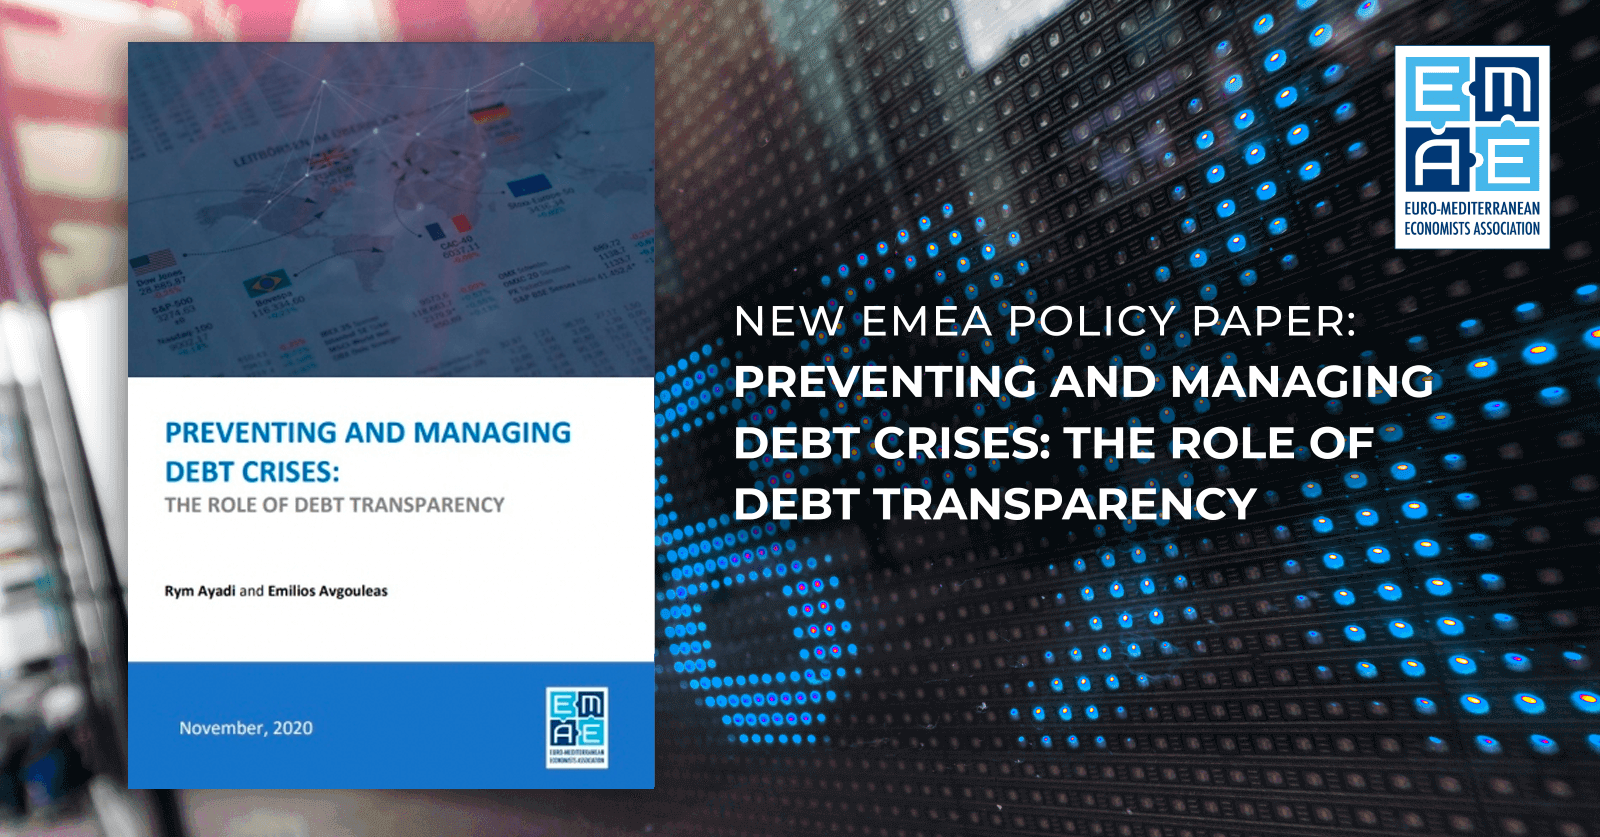 New EMEA policy paper: Preventing and Managing Debt Crises: The Role of Debt Transparency